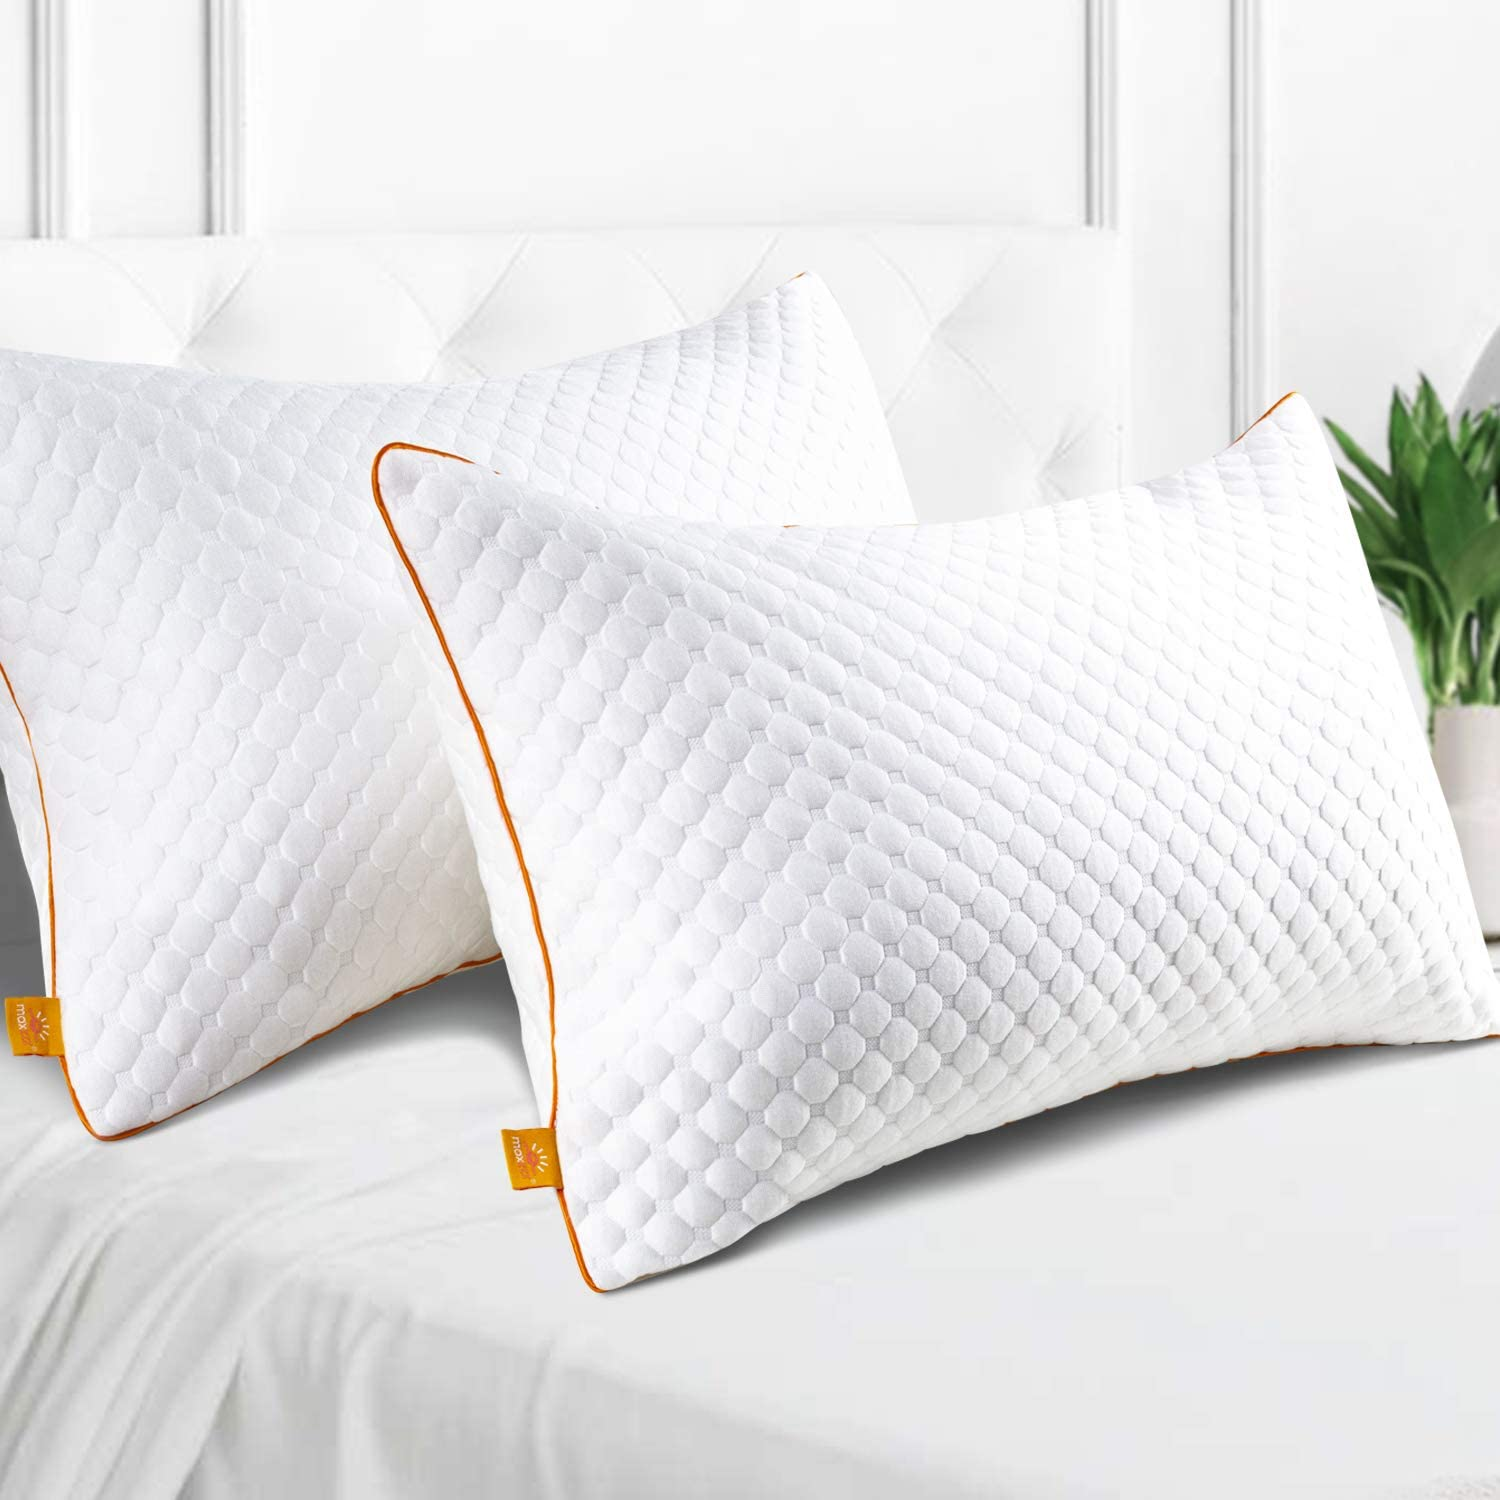 Maxzzz Bamboo Pillows for Sleeping, 2 Pack Soft Down Alternative Fiber Pillows, Hypoallergenic Queen Bed Pillows with Washable & Breathable Covers